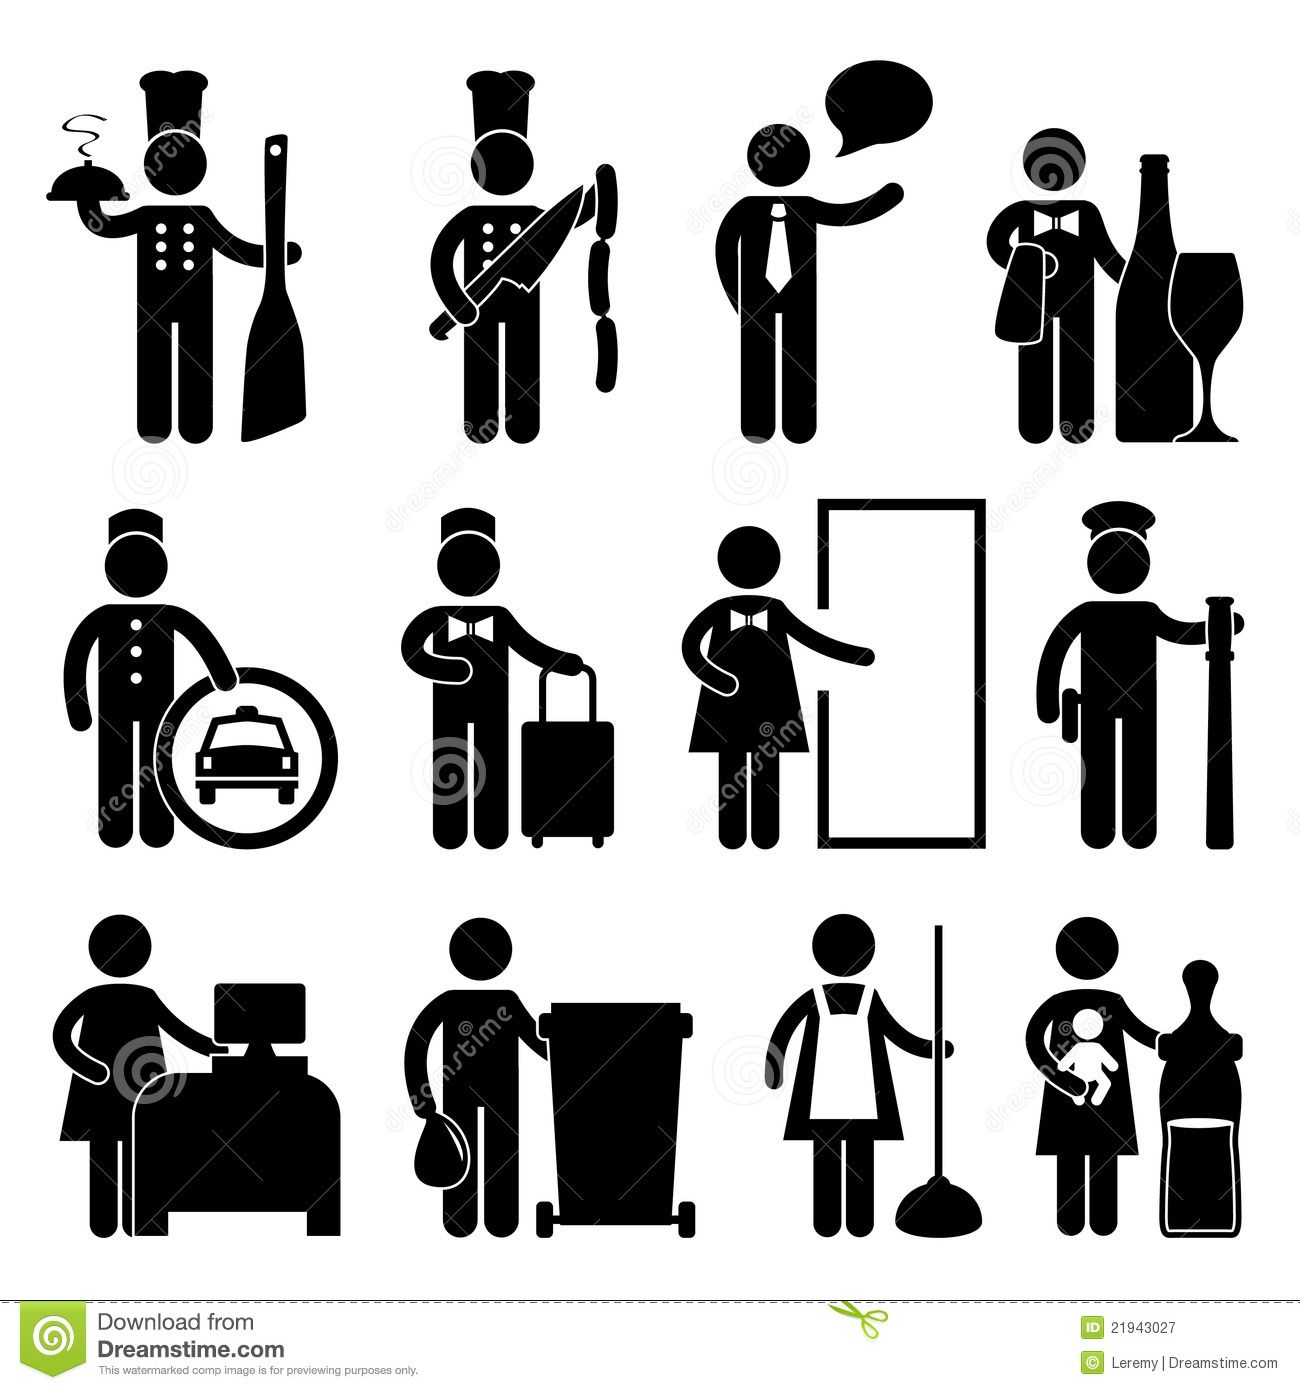 Pin By Didee Buck On Stick Figures